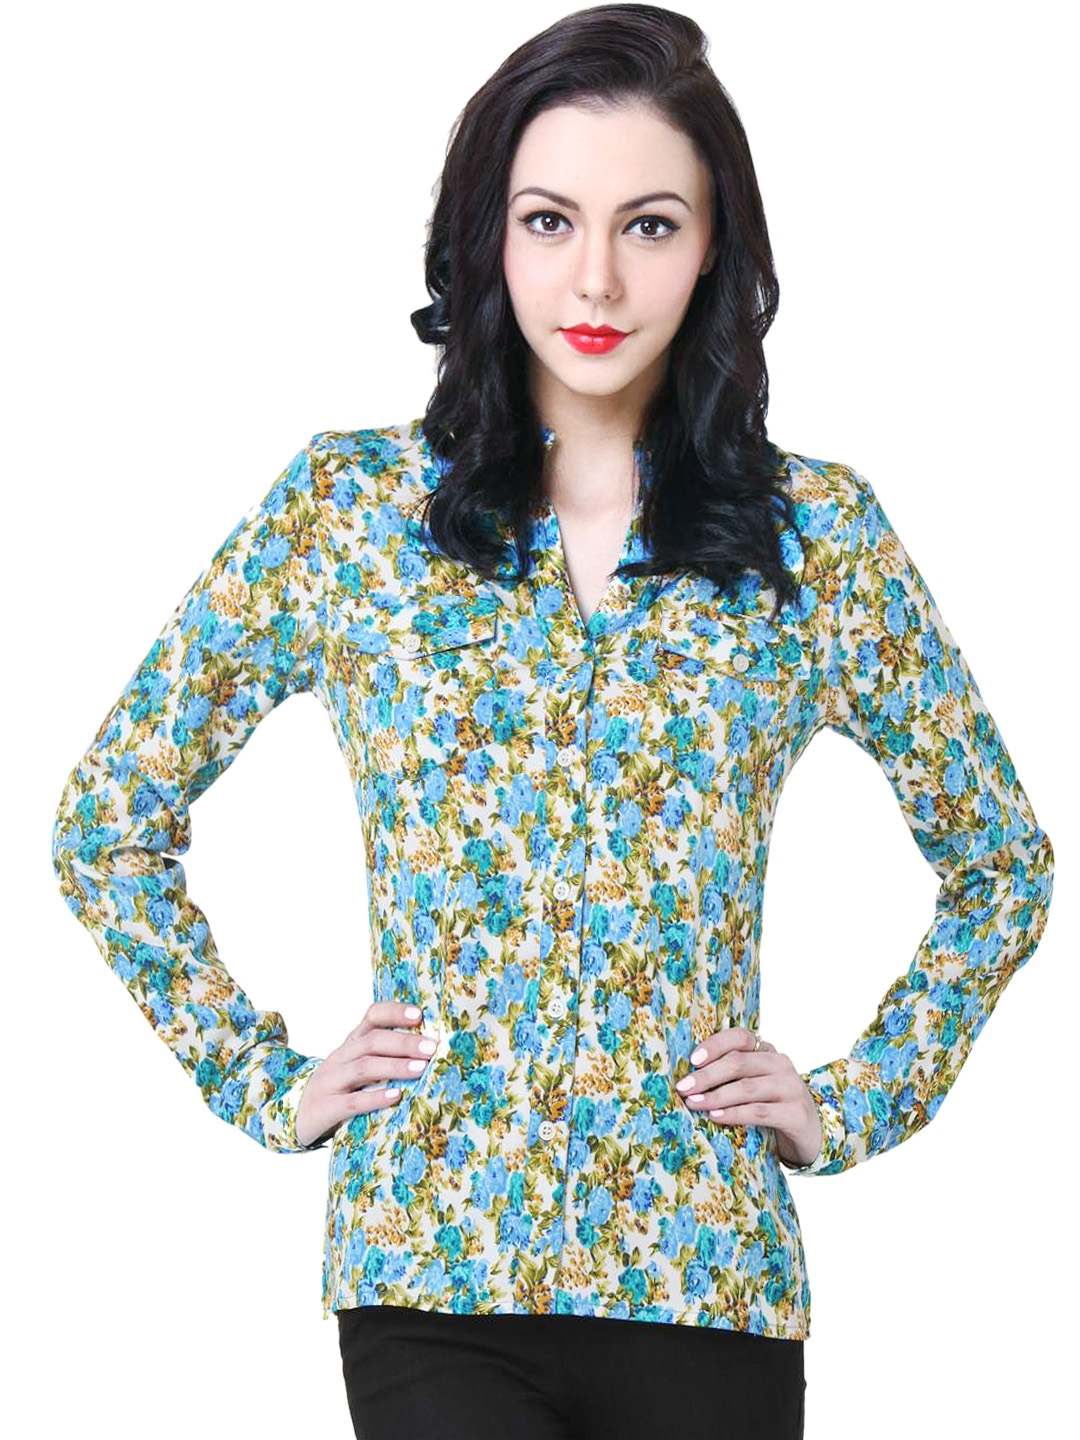 Myntra purys women white floral printed shirt 579322 buy for Shirts online shopping lowest price